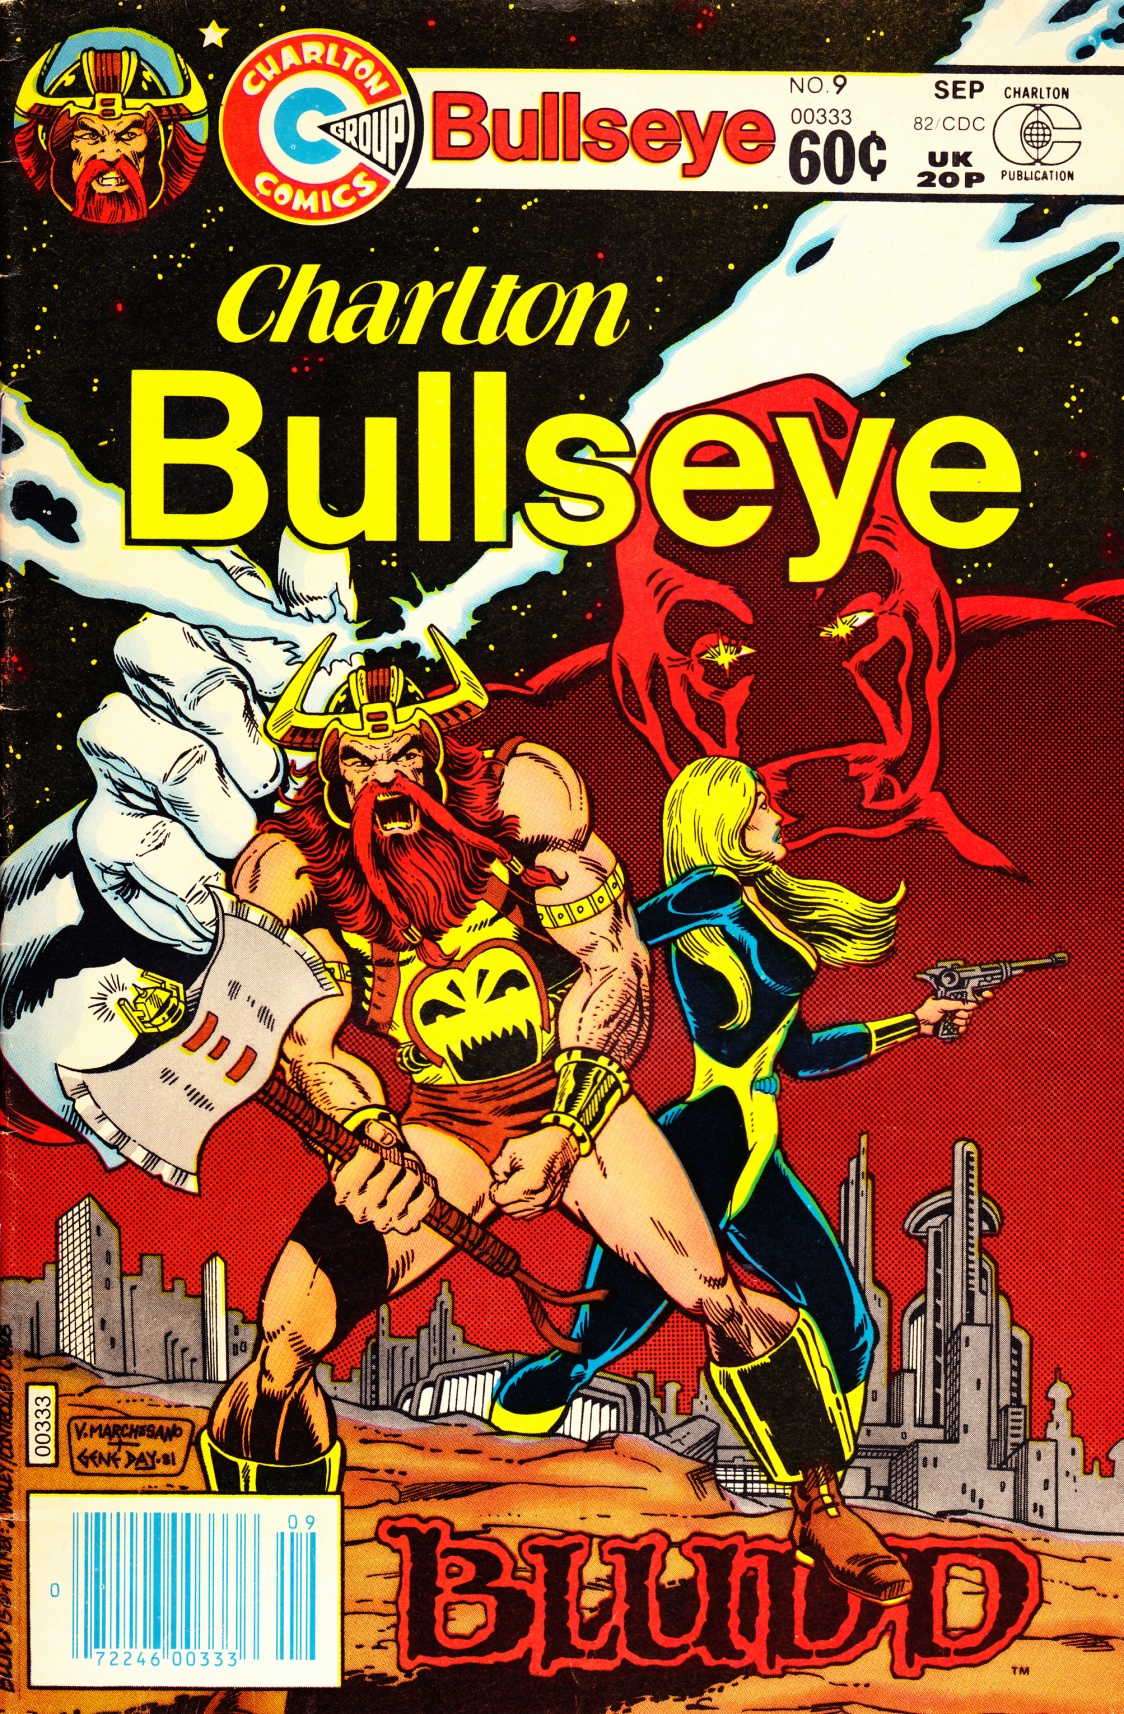 C:\Users\Robert\Documents\CARTOONING ILLUSTRATION ANIMATION\IMAGE CARTOON\IMAGE CARTOON B\BLUDD. Charlton Bullseye, 2-9, Sept. 1982. fc..jpg